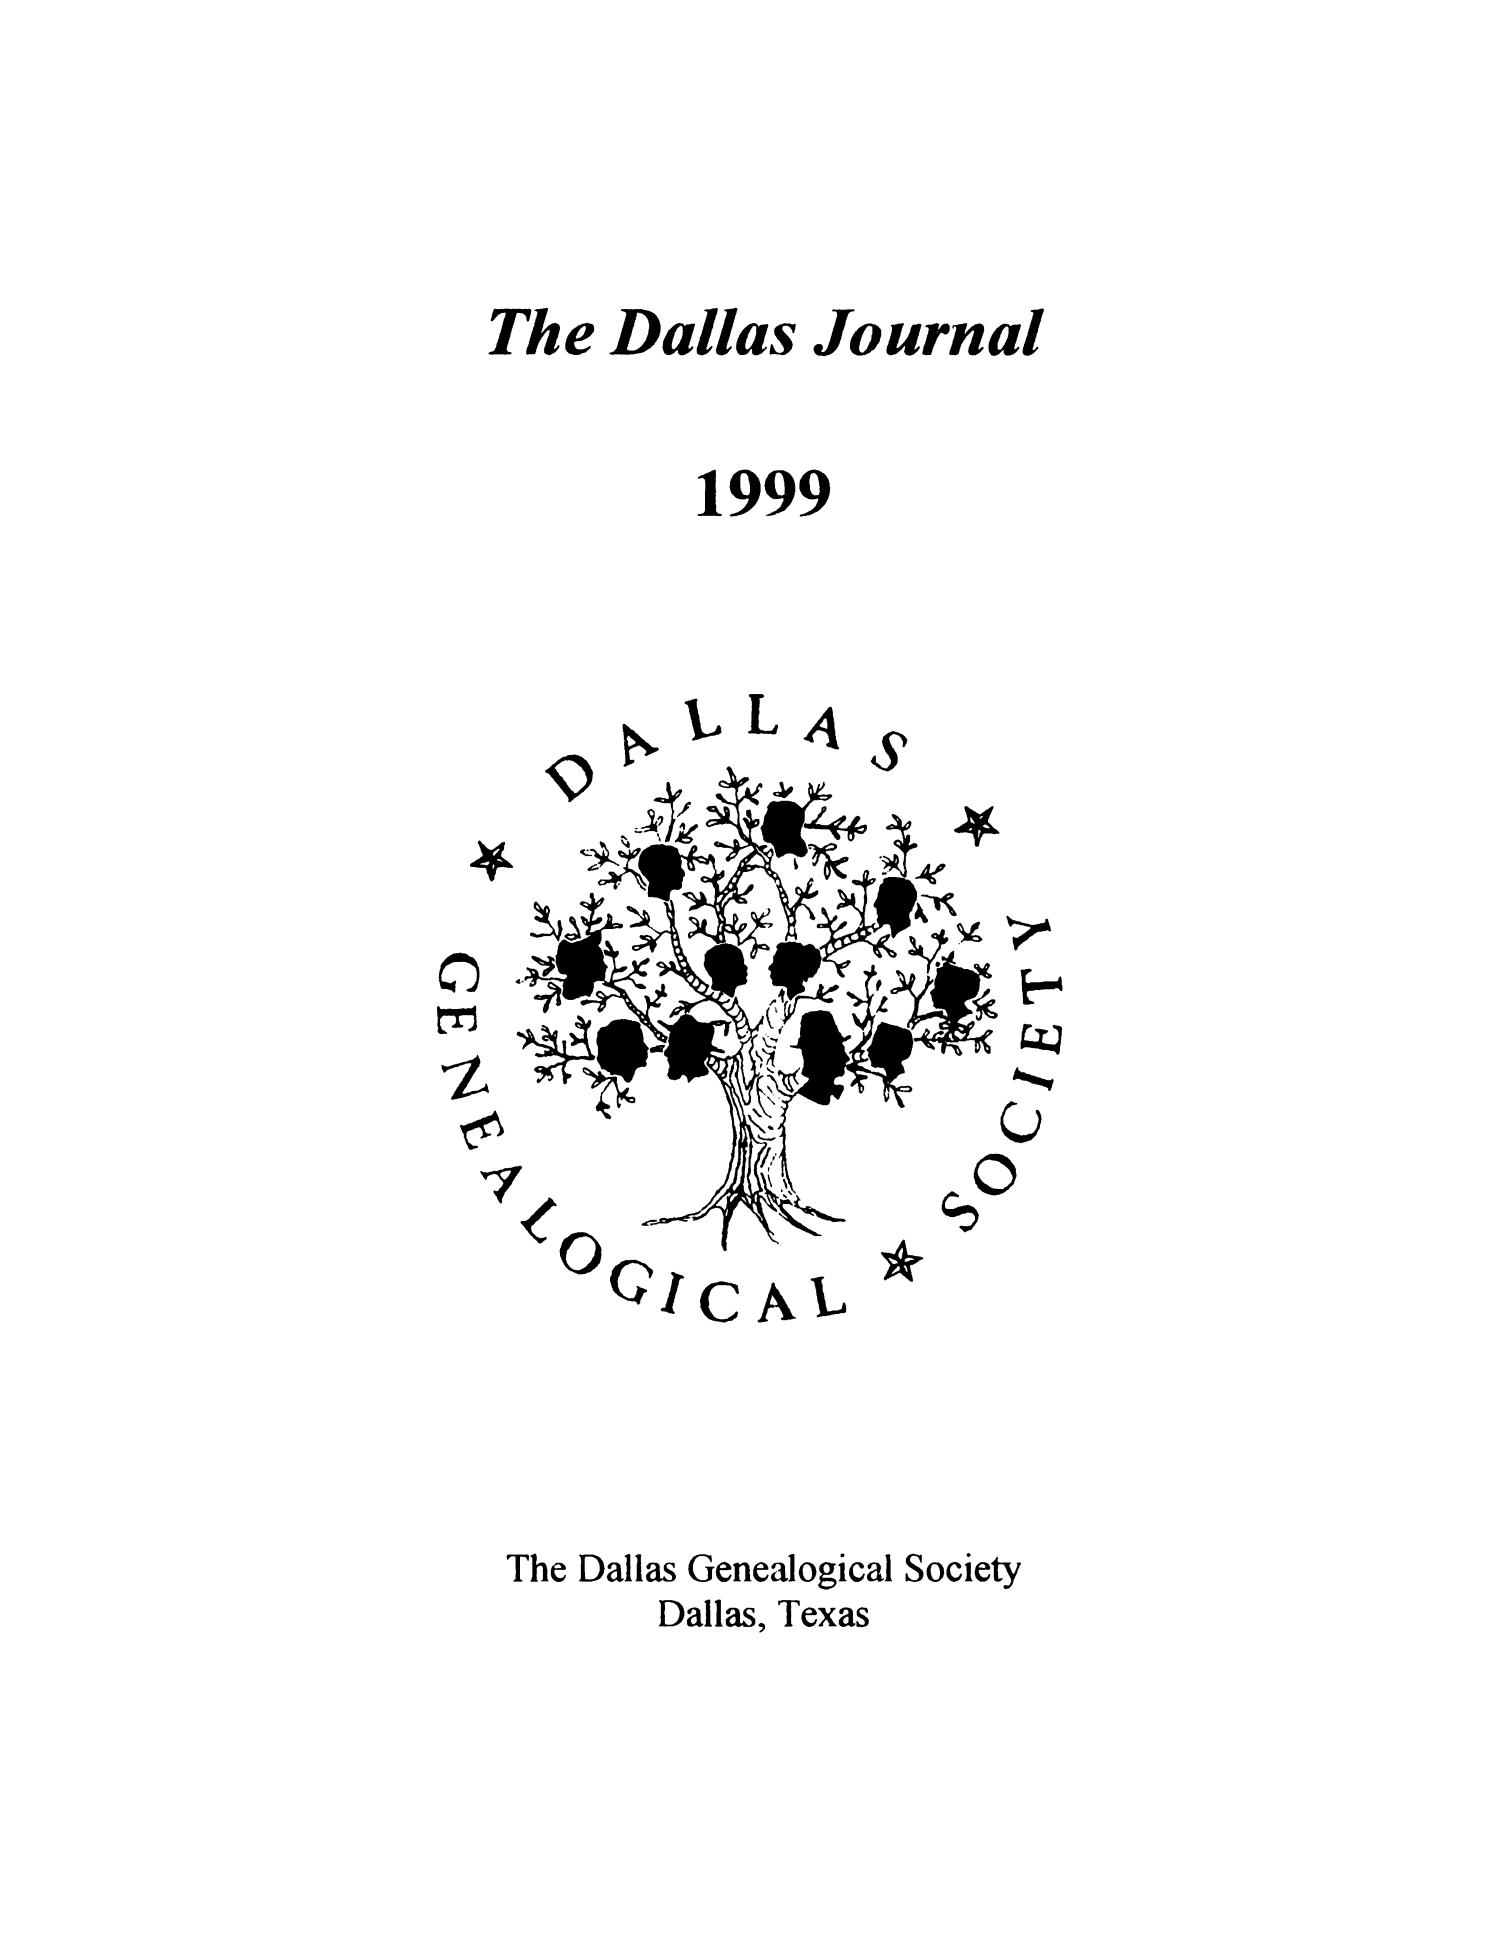 The Dallas Journal, Volume 44, 1999                                                                                                      Title Page